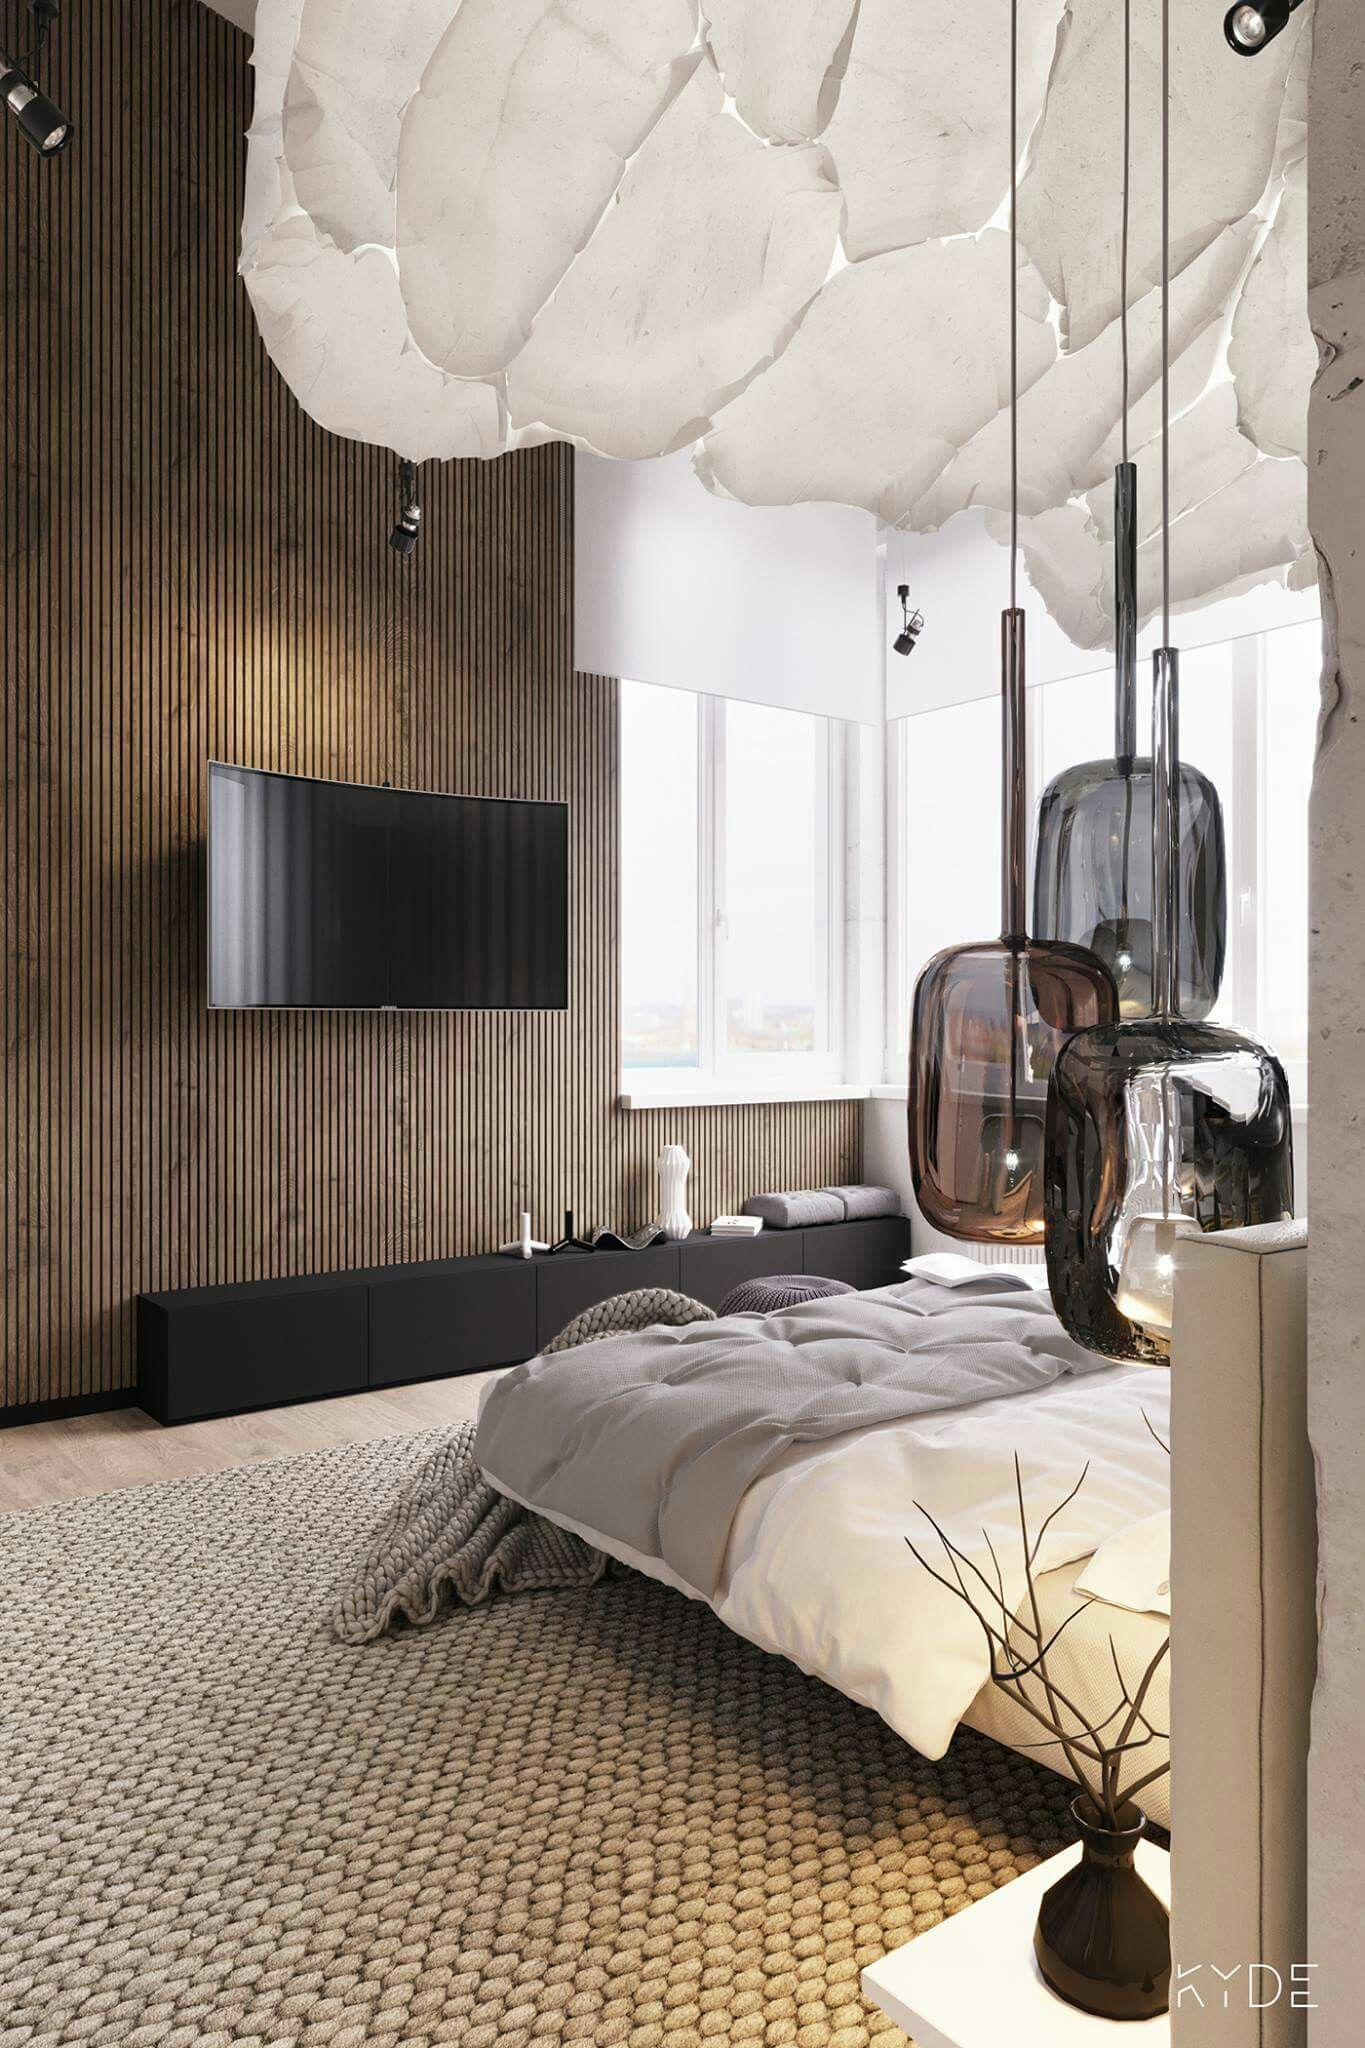 Hotel Bedroom: See More Luxury Luxury Hotel Lighting Inspirations At